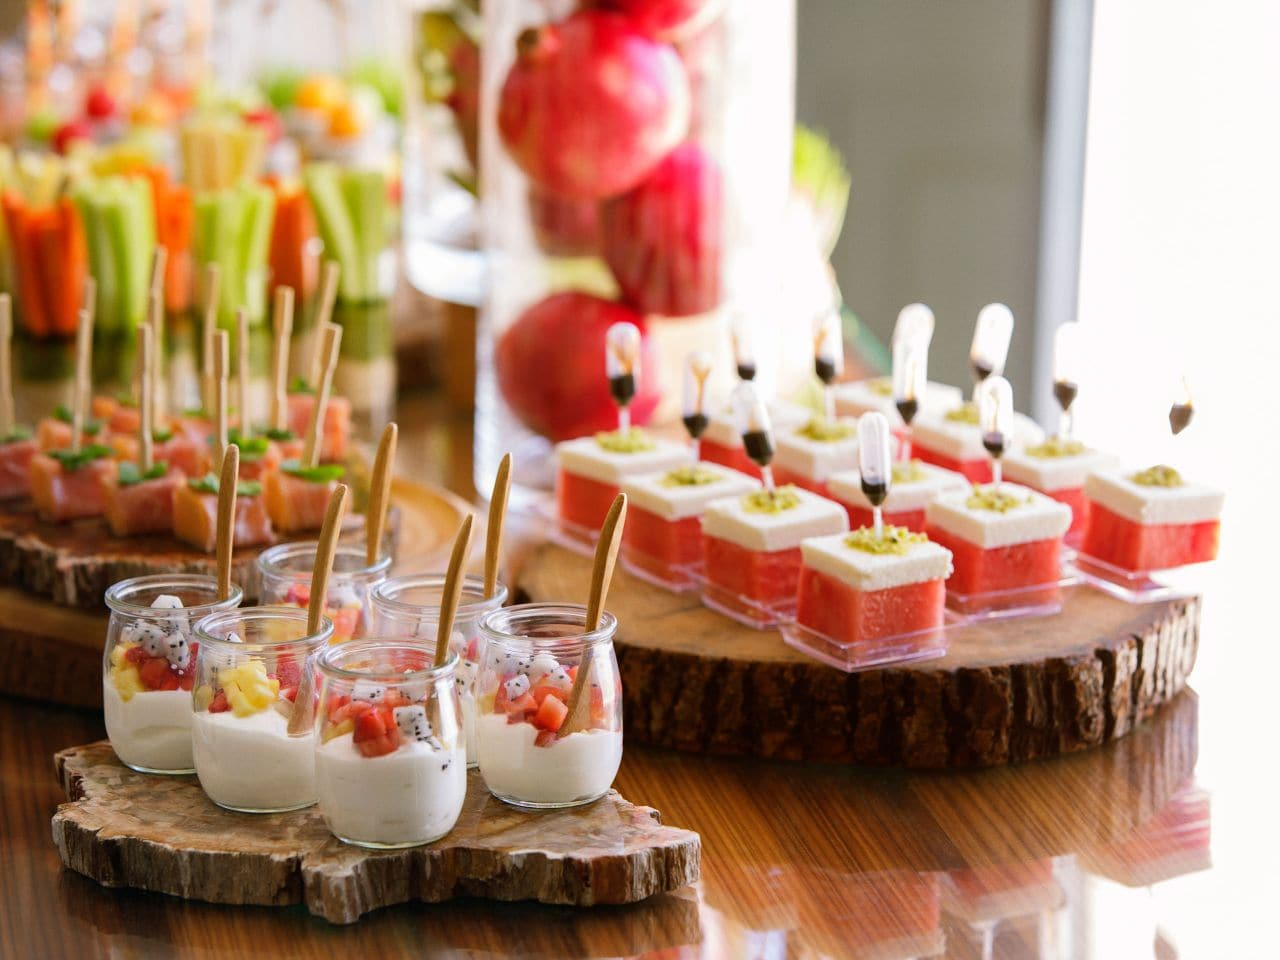 Food and beverage catering